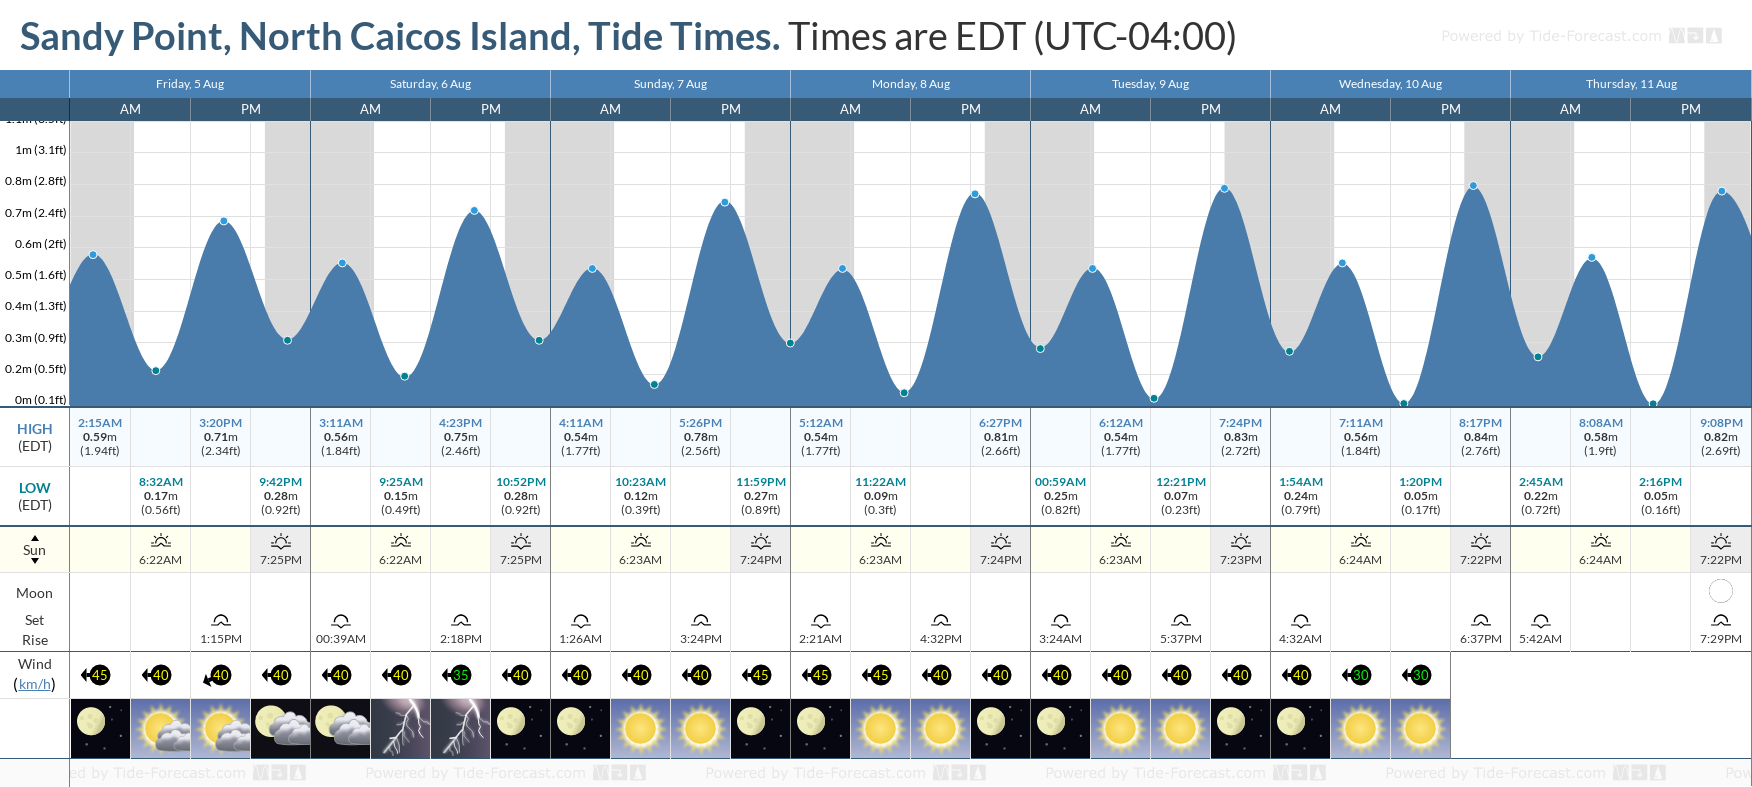 Sandy Point, North Caicos Island Tide Chart including high and low tide tide times for the next 7 days